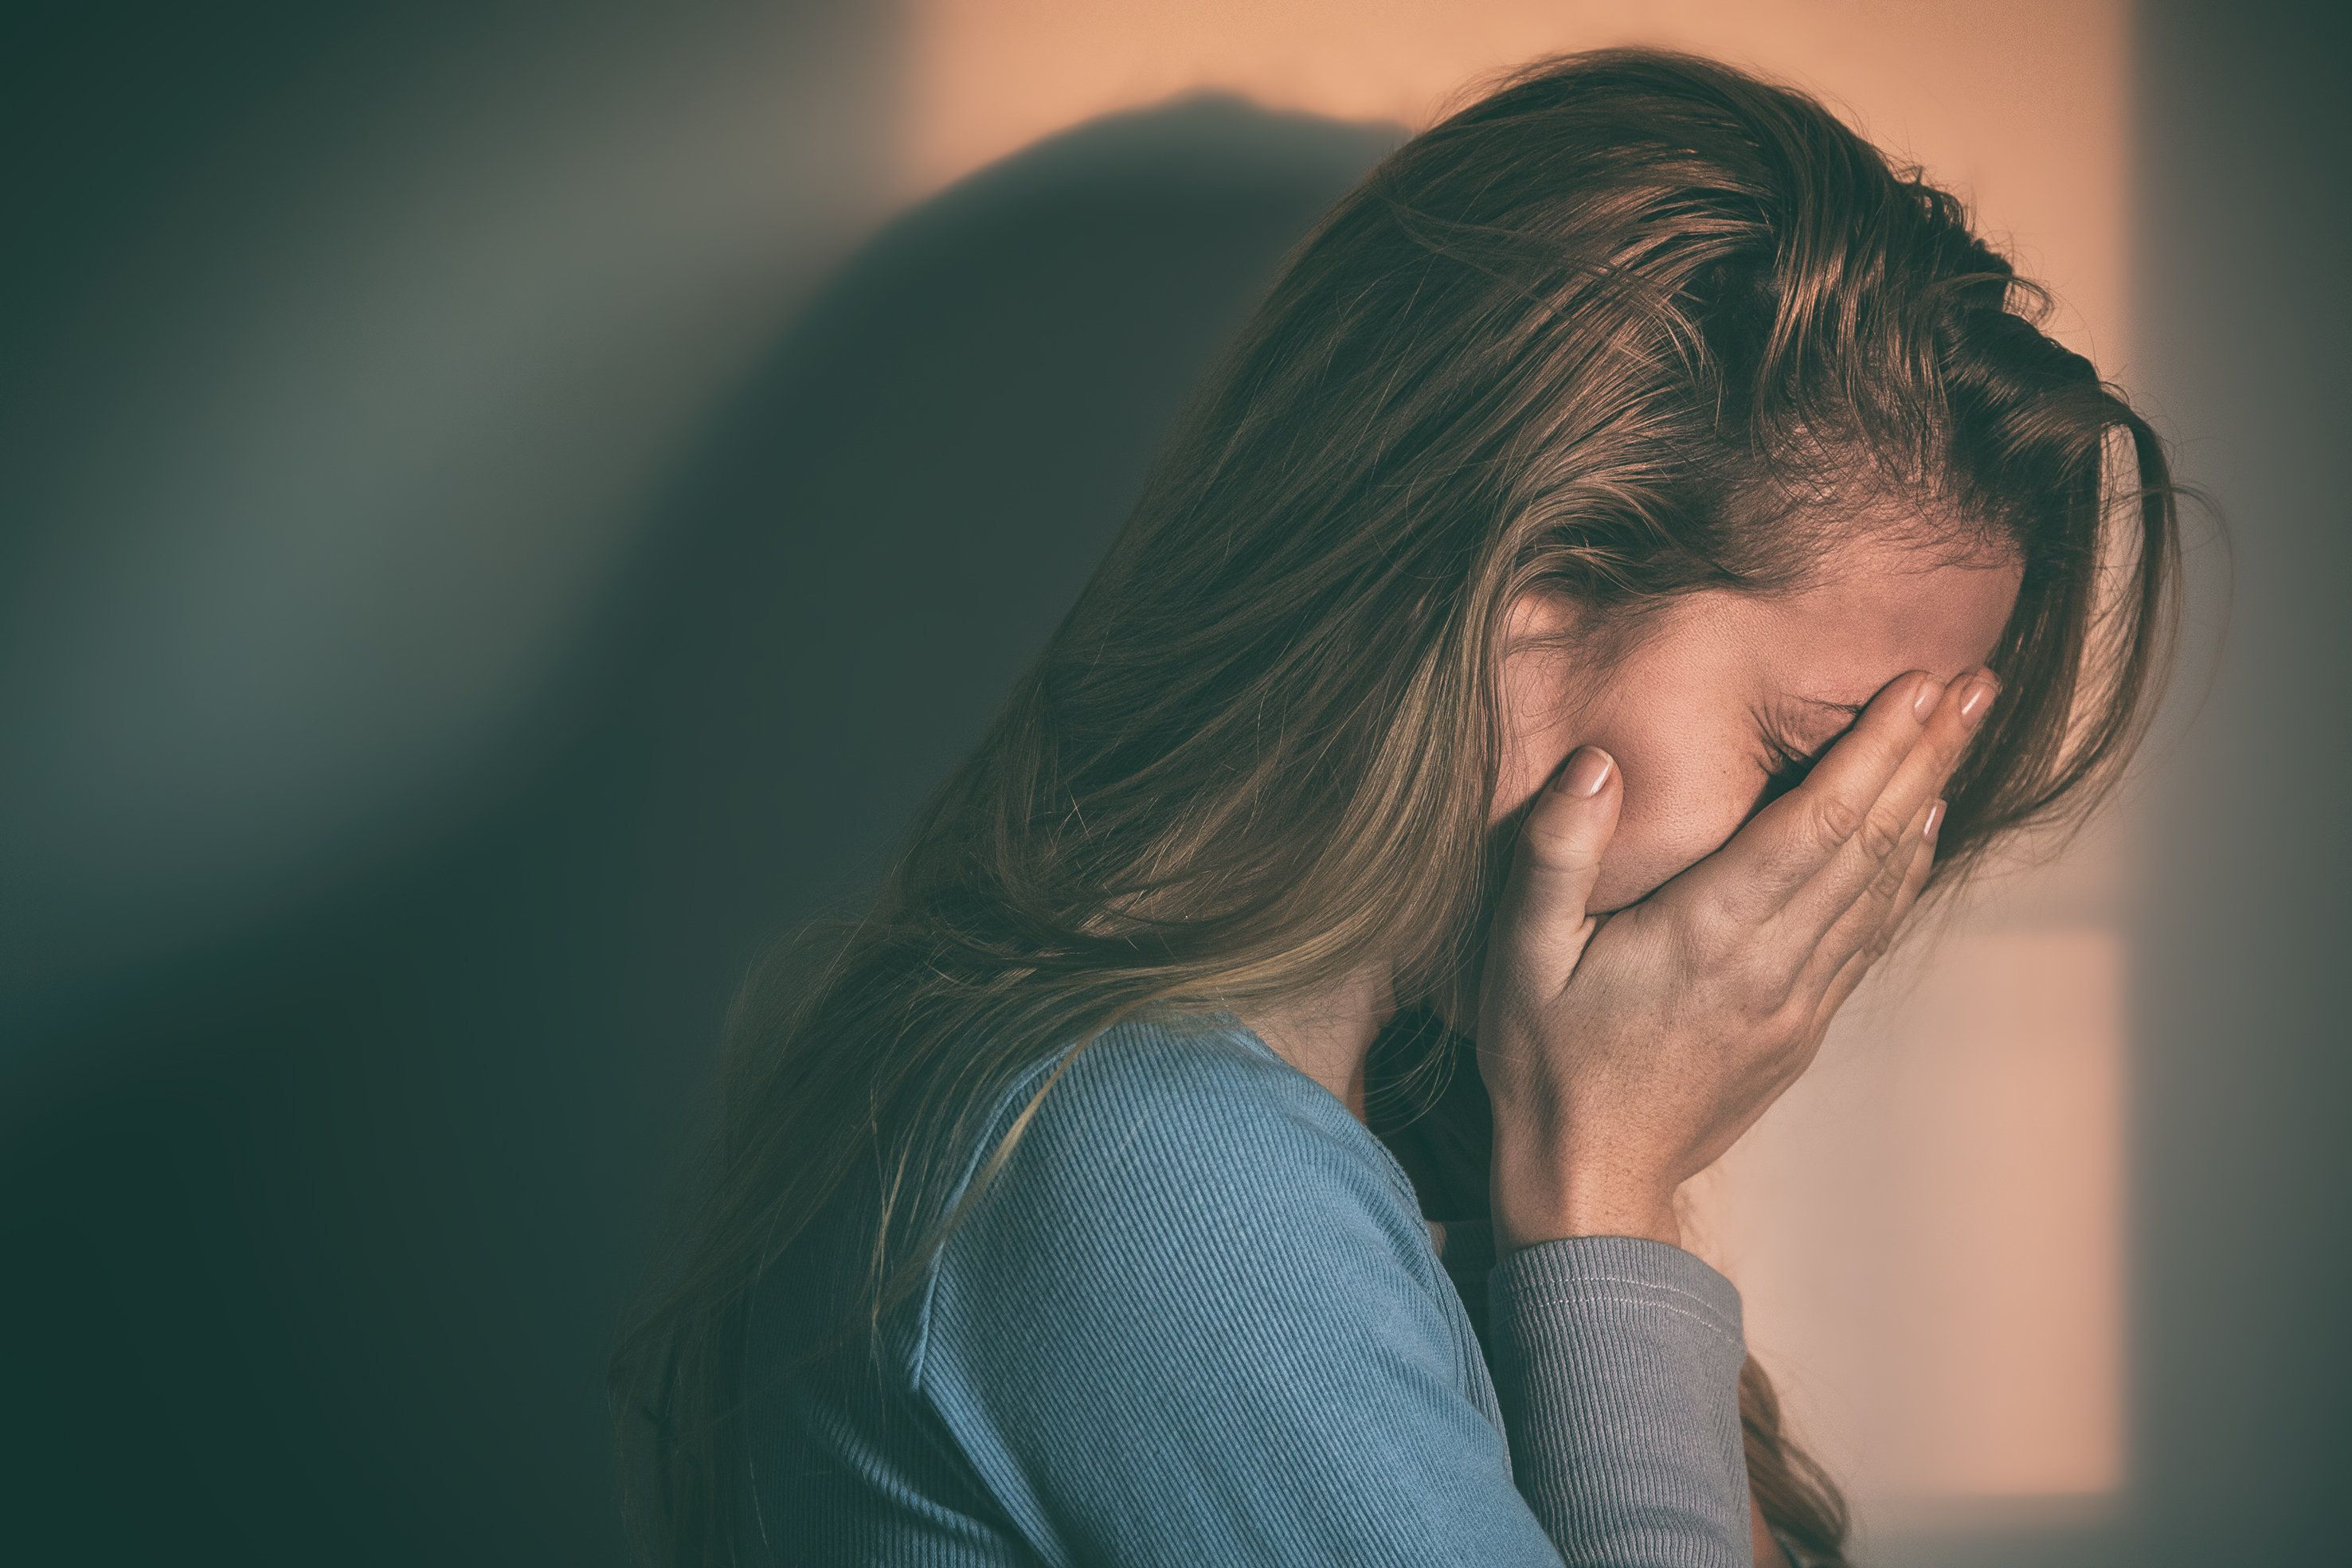 Stigma around mental health is preventing young people from seeking